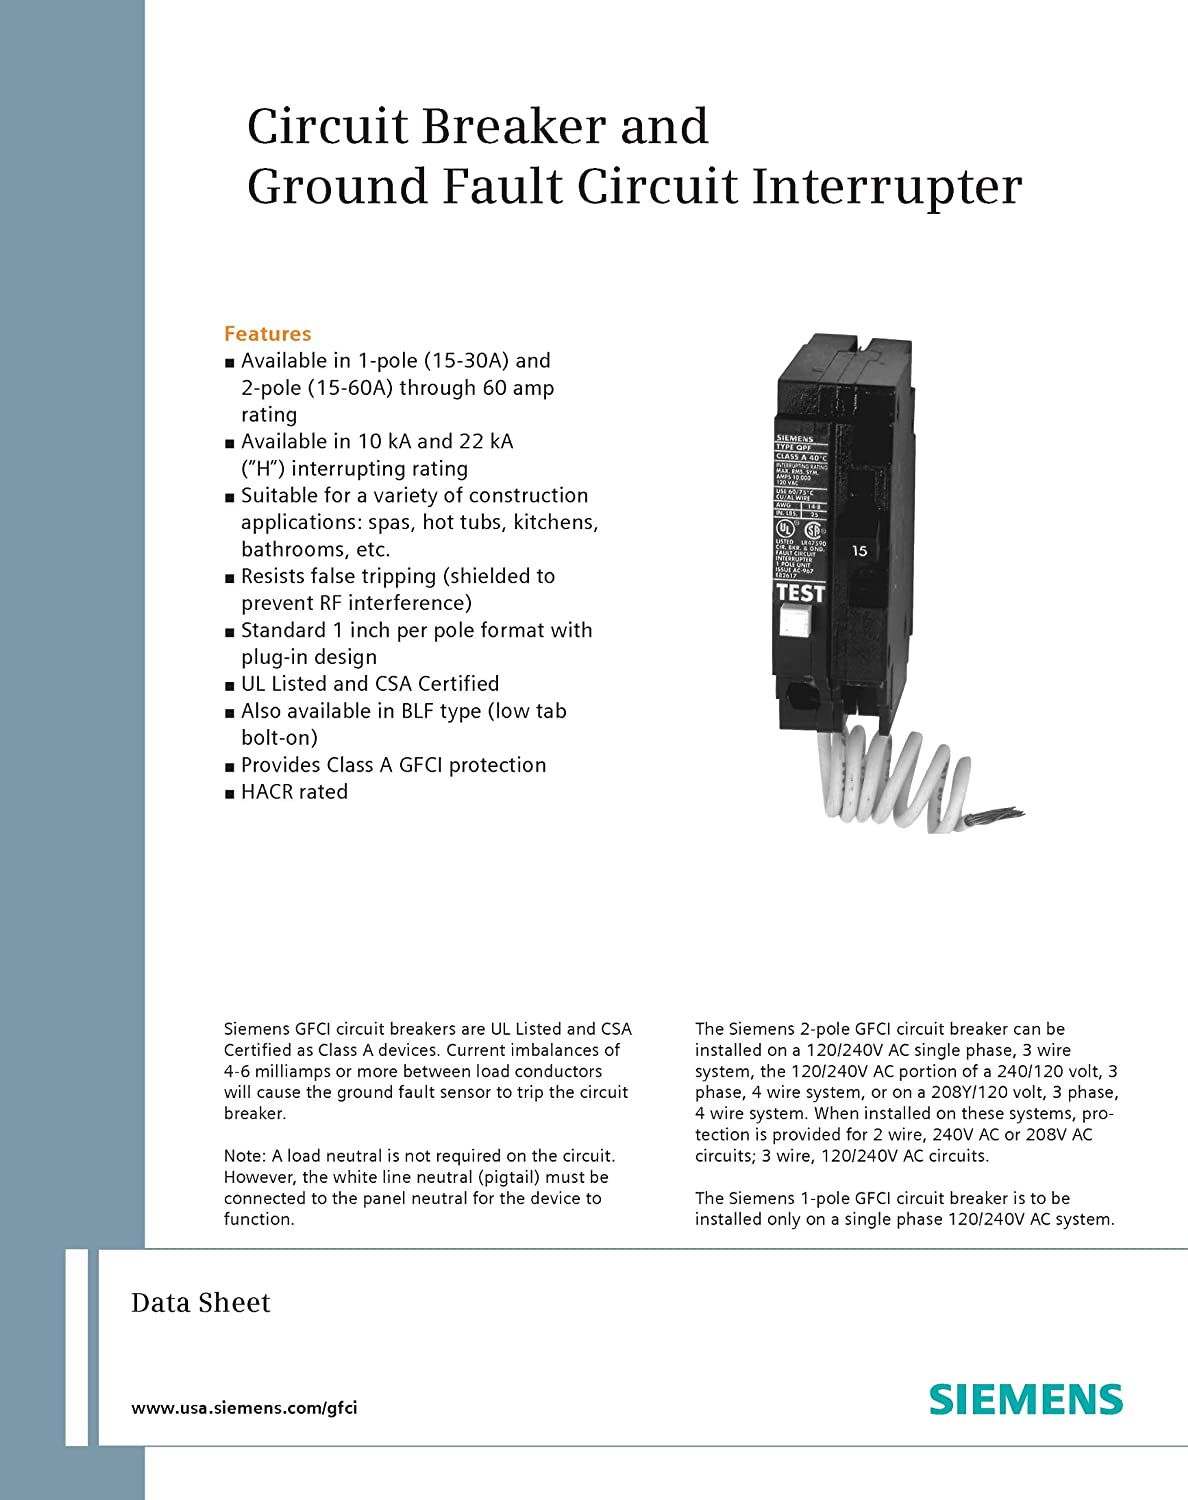 Wiring Diagram C Neutral Wire Will Be Connected To Siemens Qf120 20 Amp 1 Pole 120 Volt Ground Fault Circuit Interrupter Breakers